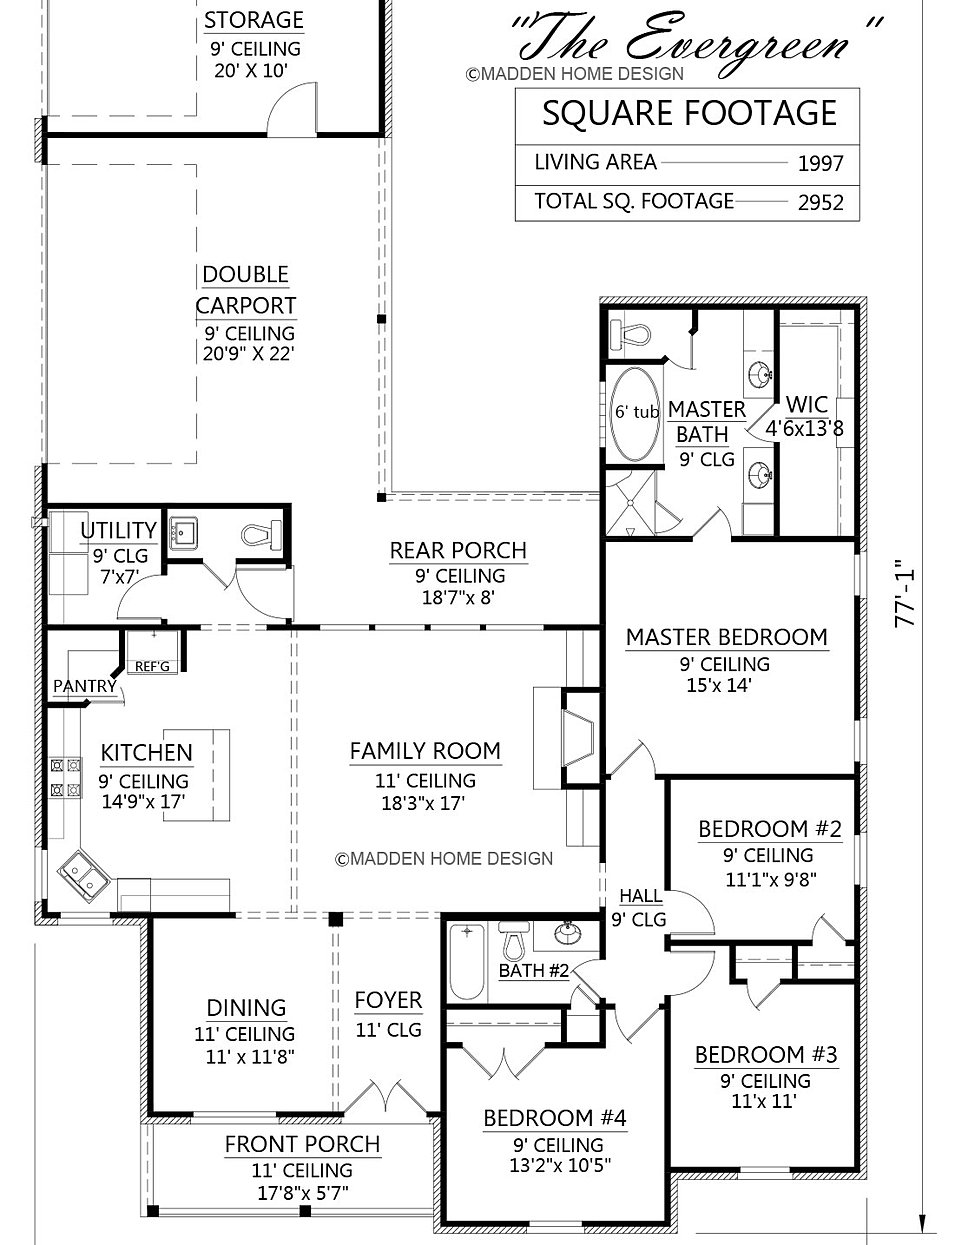 madden home design - the evergreen